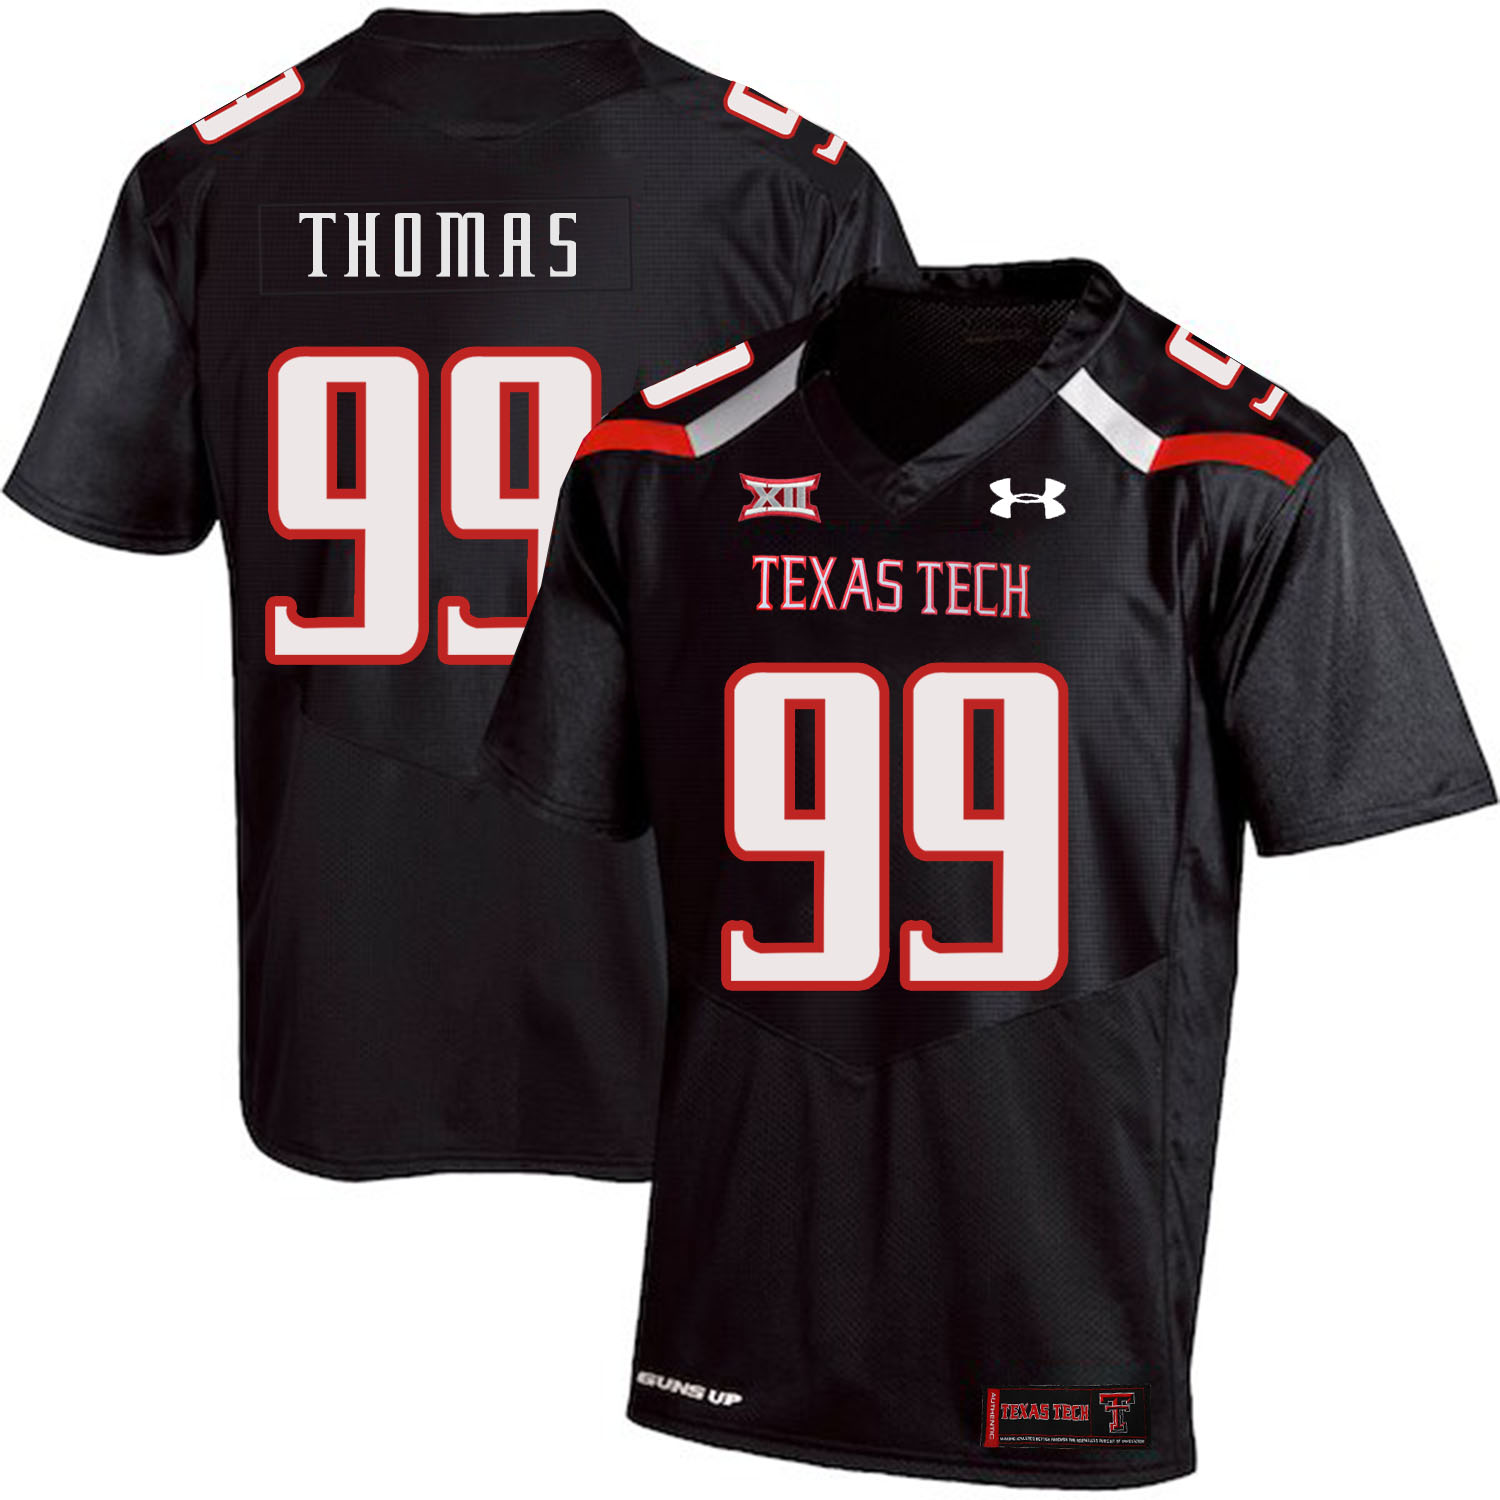 Texas Tech Red Raiders 99 Mychealon Thomas Black College Football Jersey